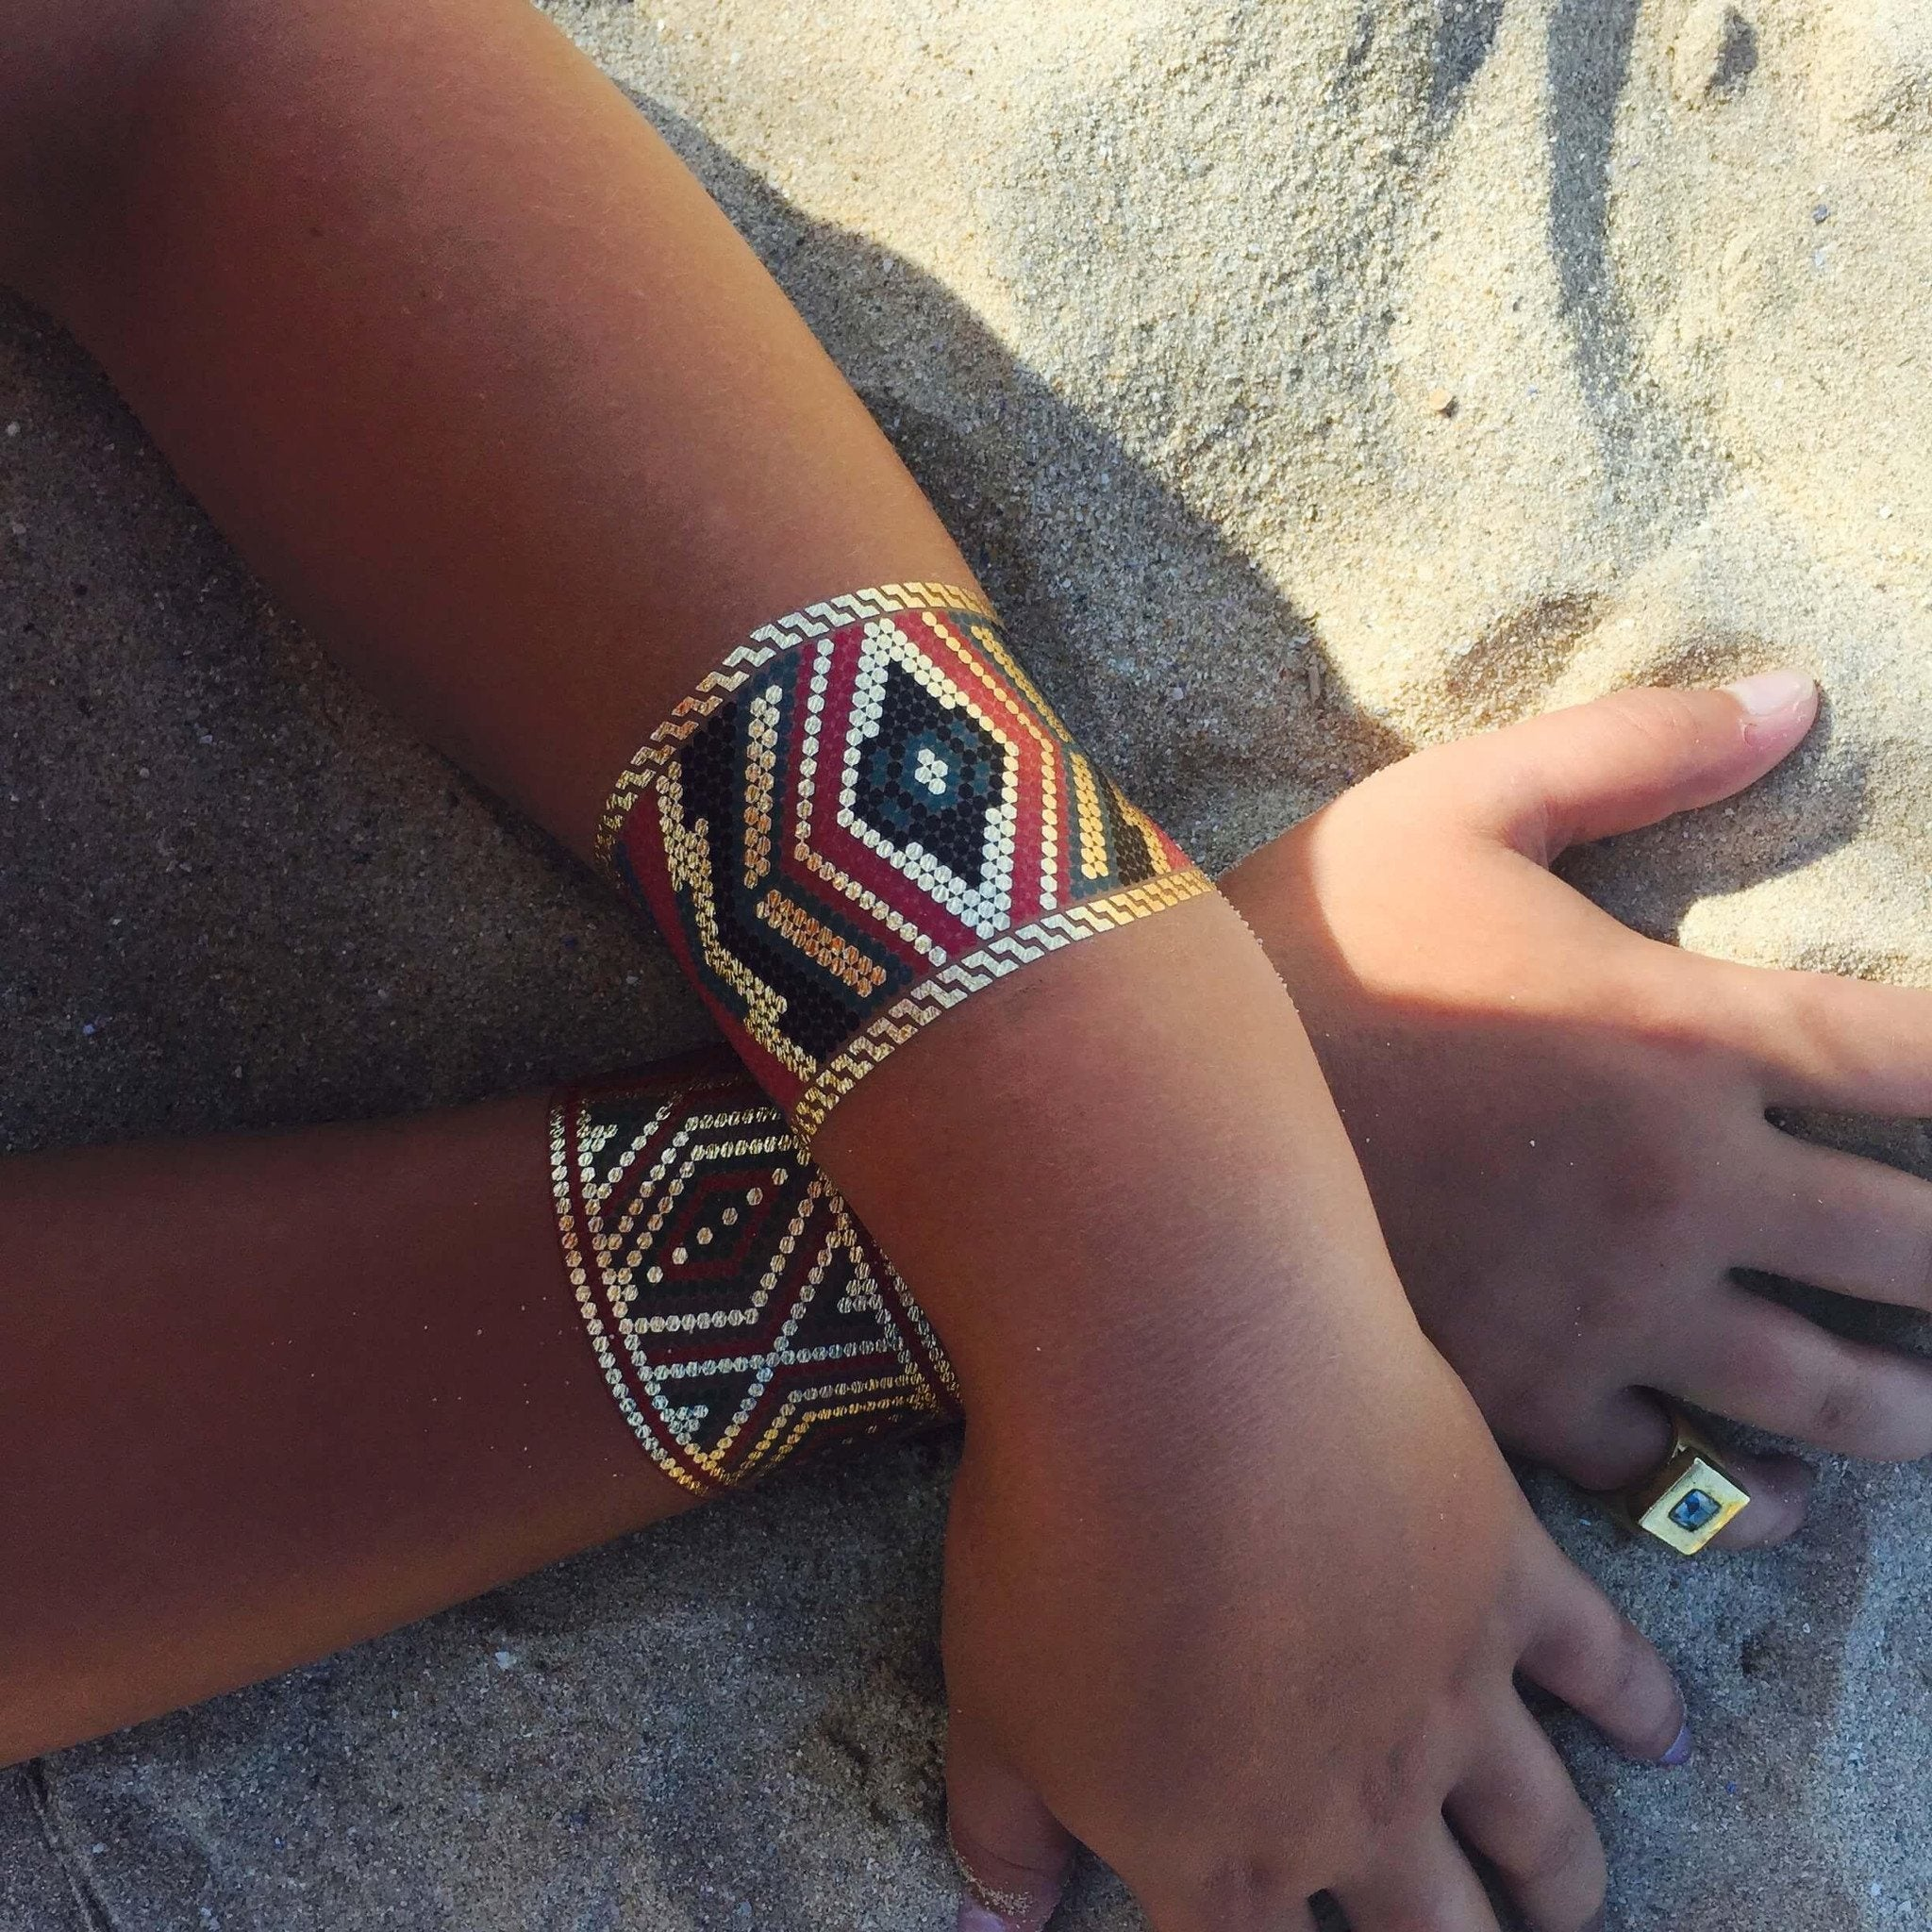 Azzy Aztec Temporary Metallic Tattoo Bracelets